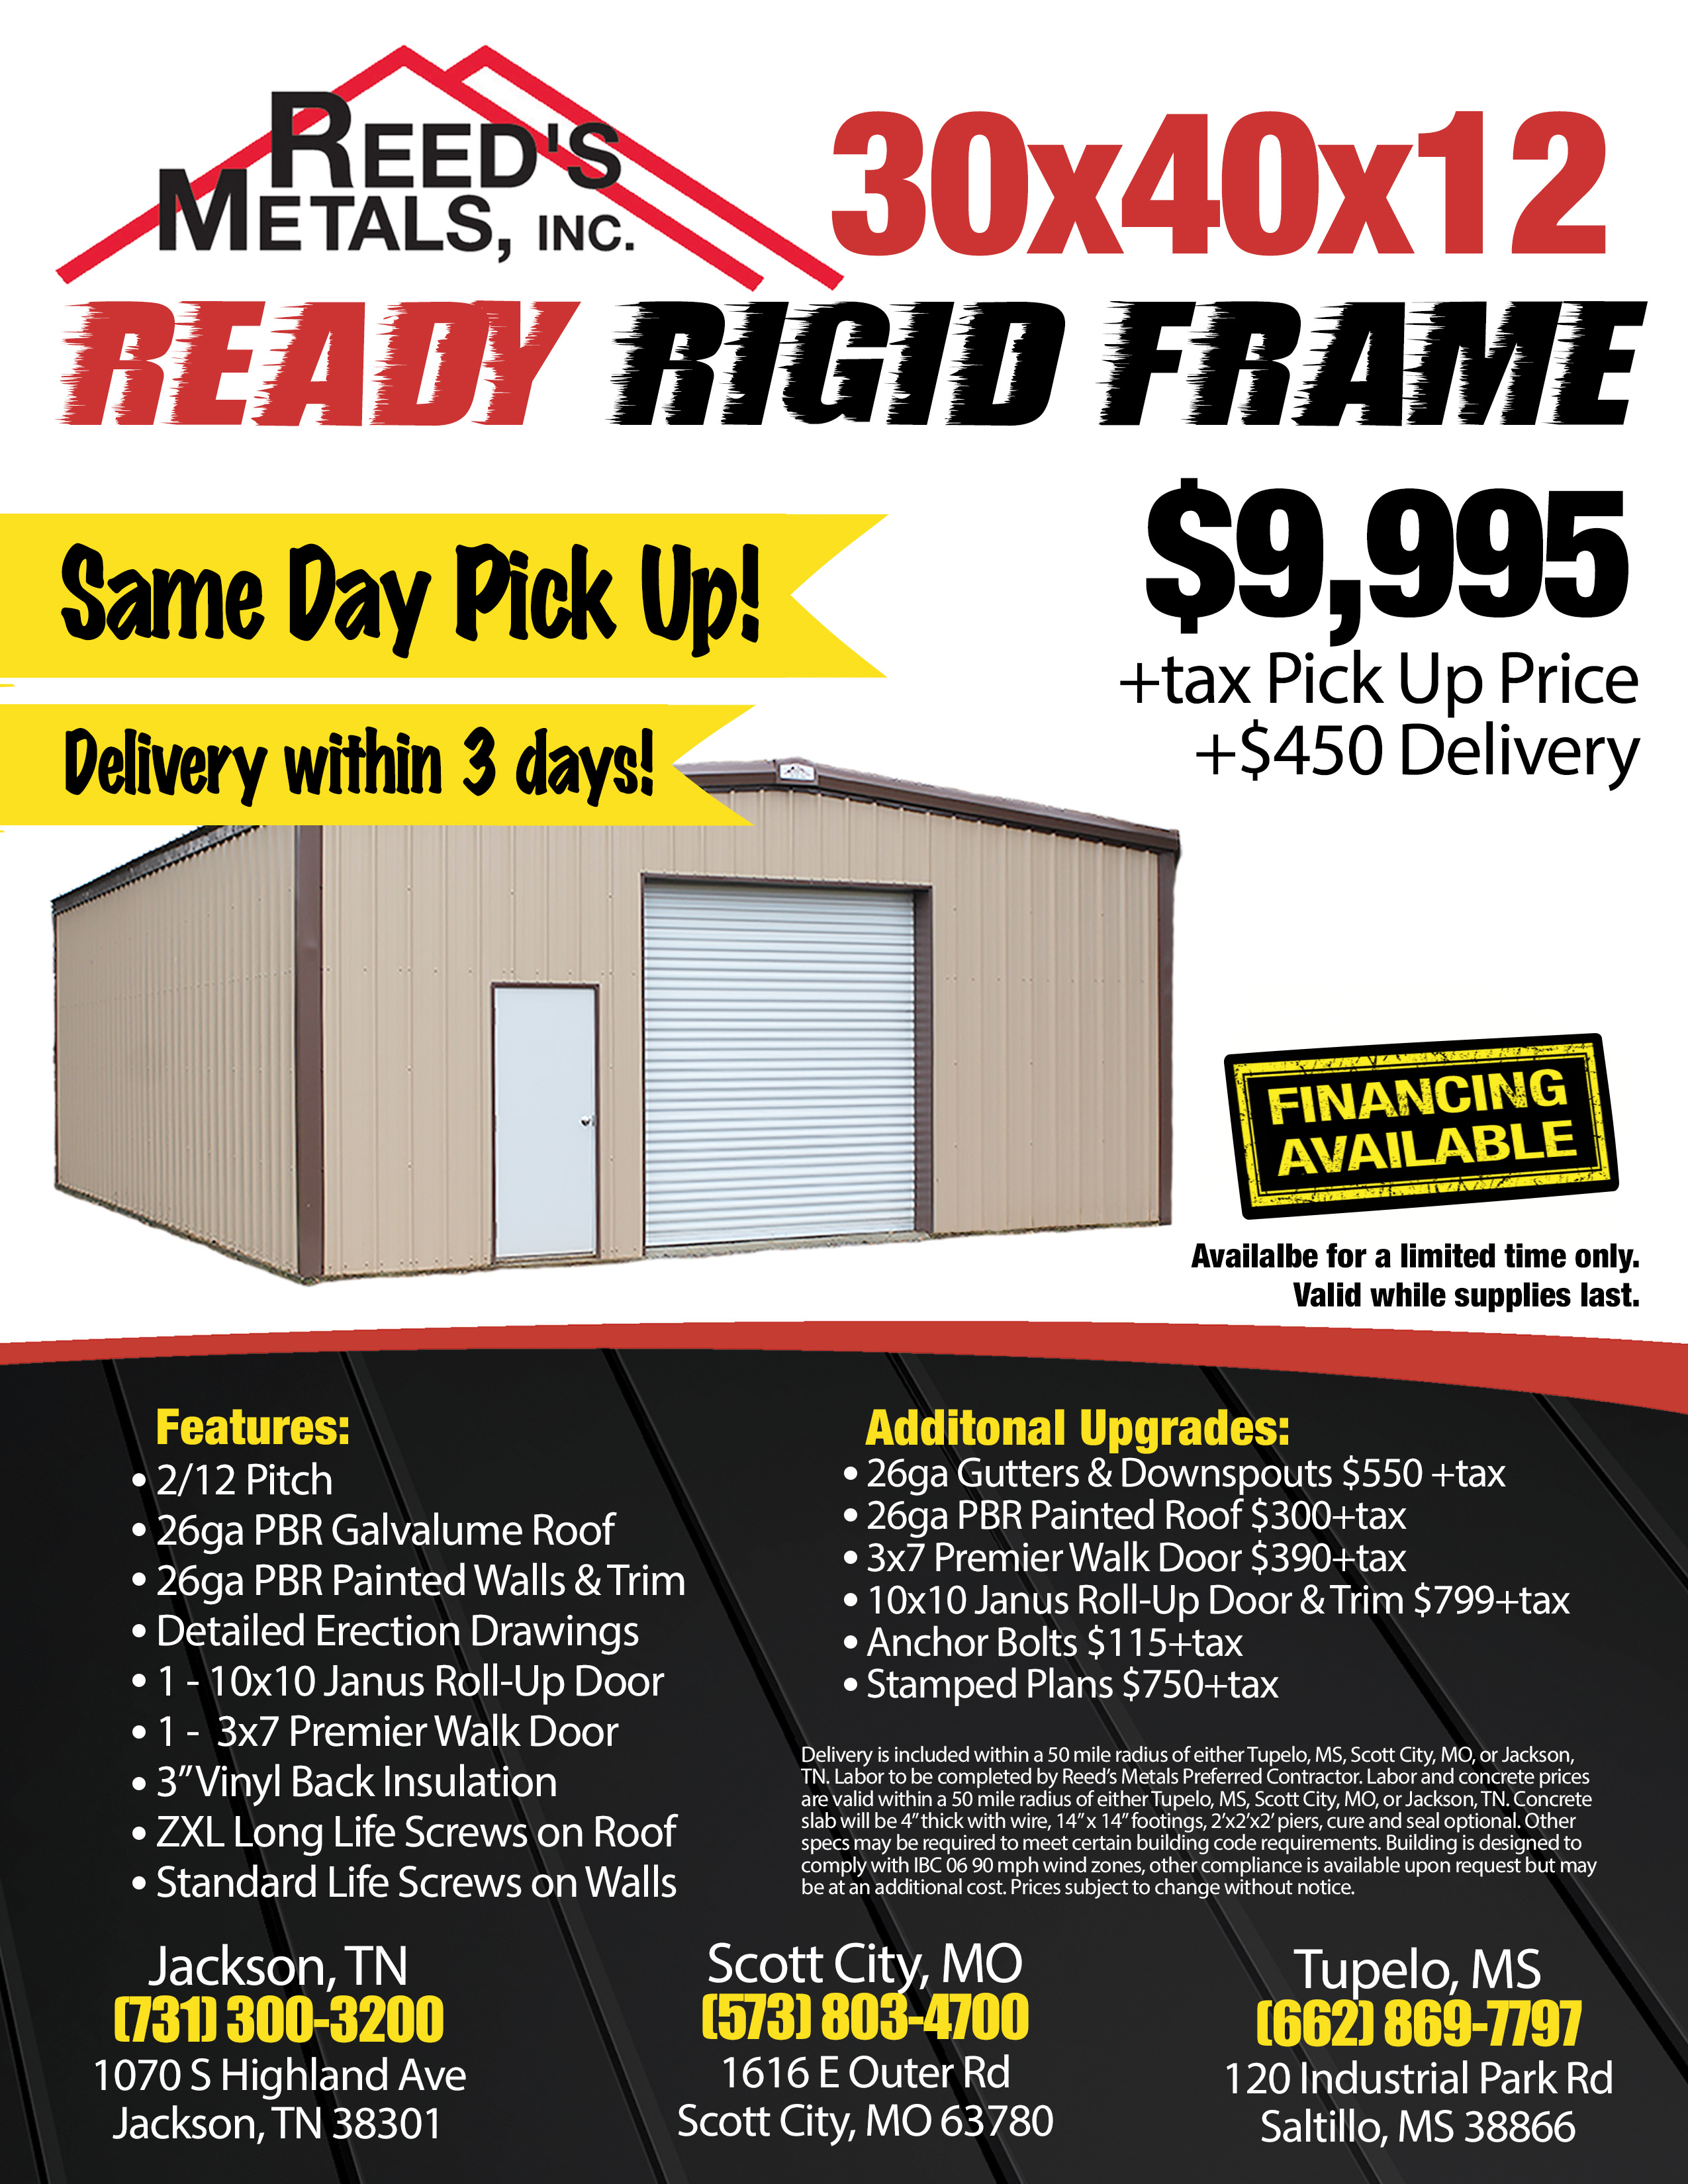 Scott City - Ready Rigid Frame